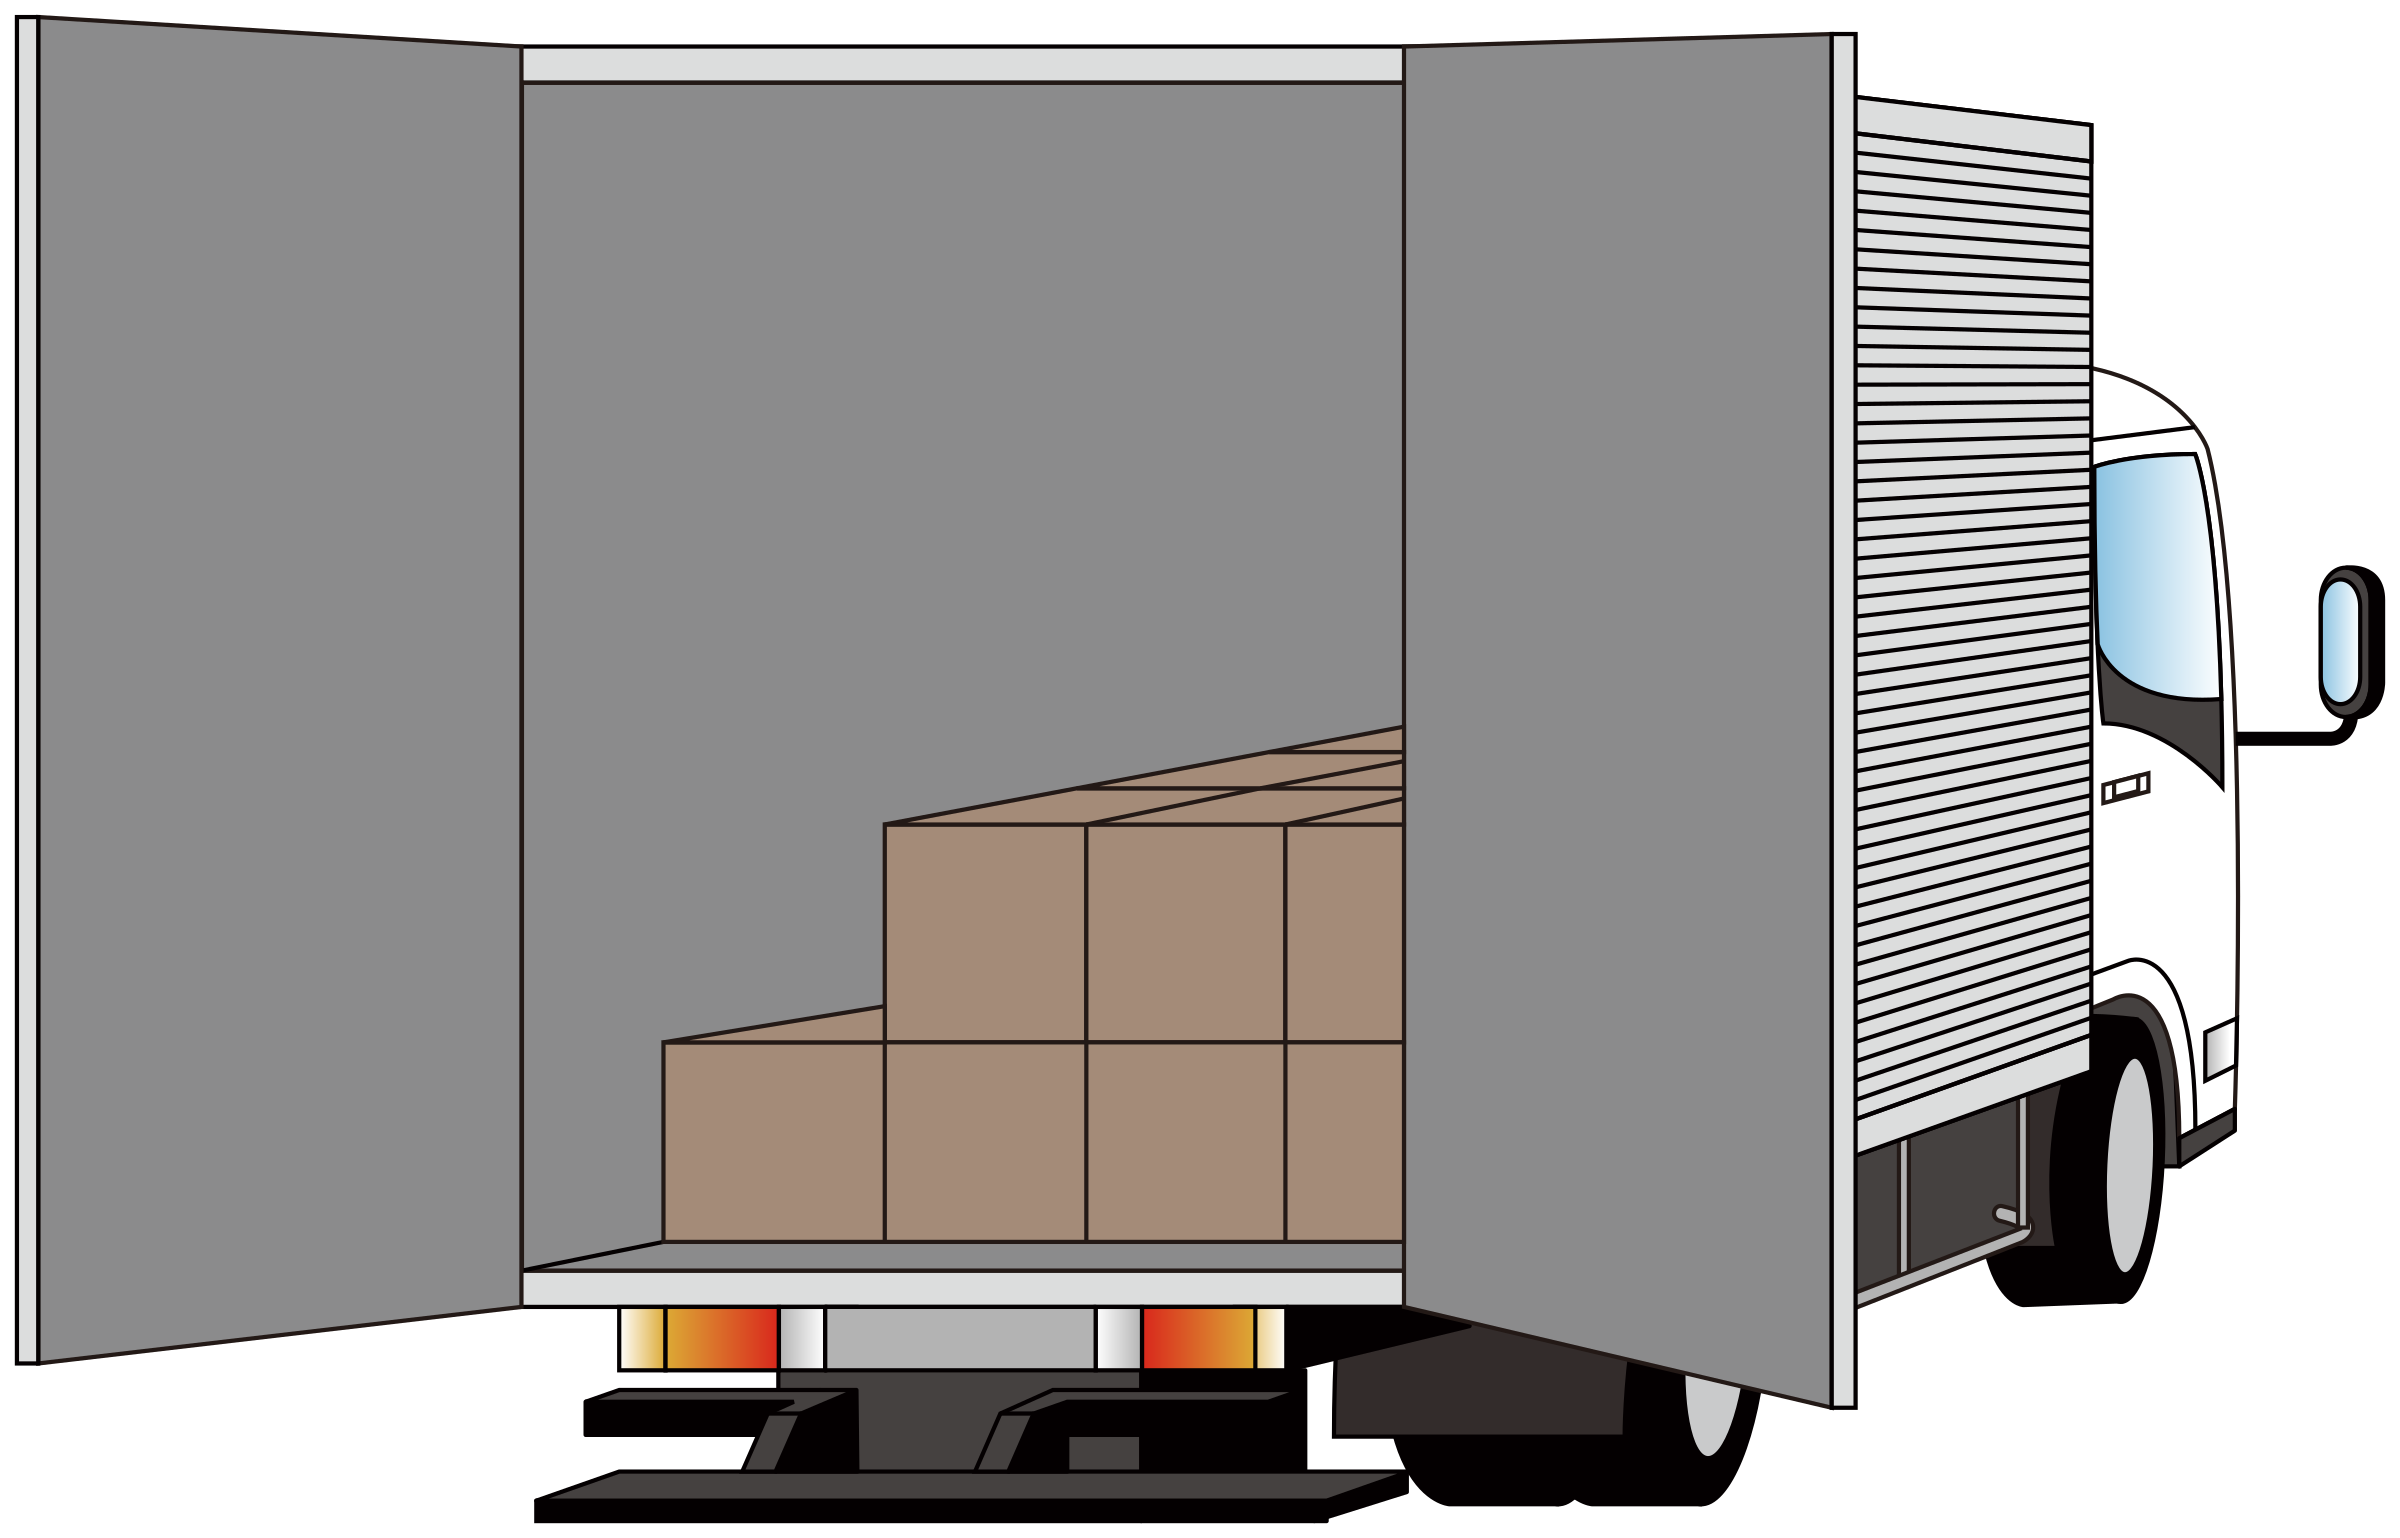 Delivery truck - rear side opened by Juhele